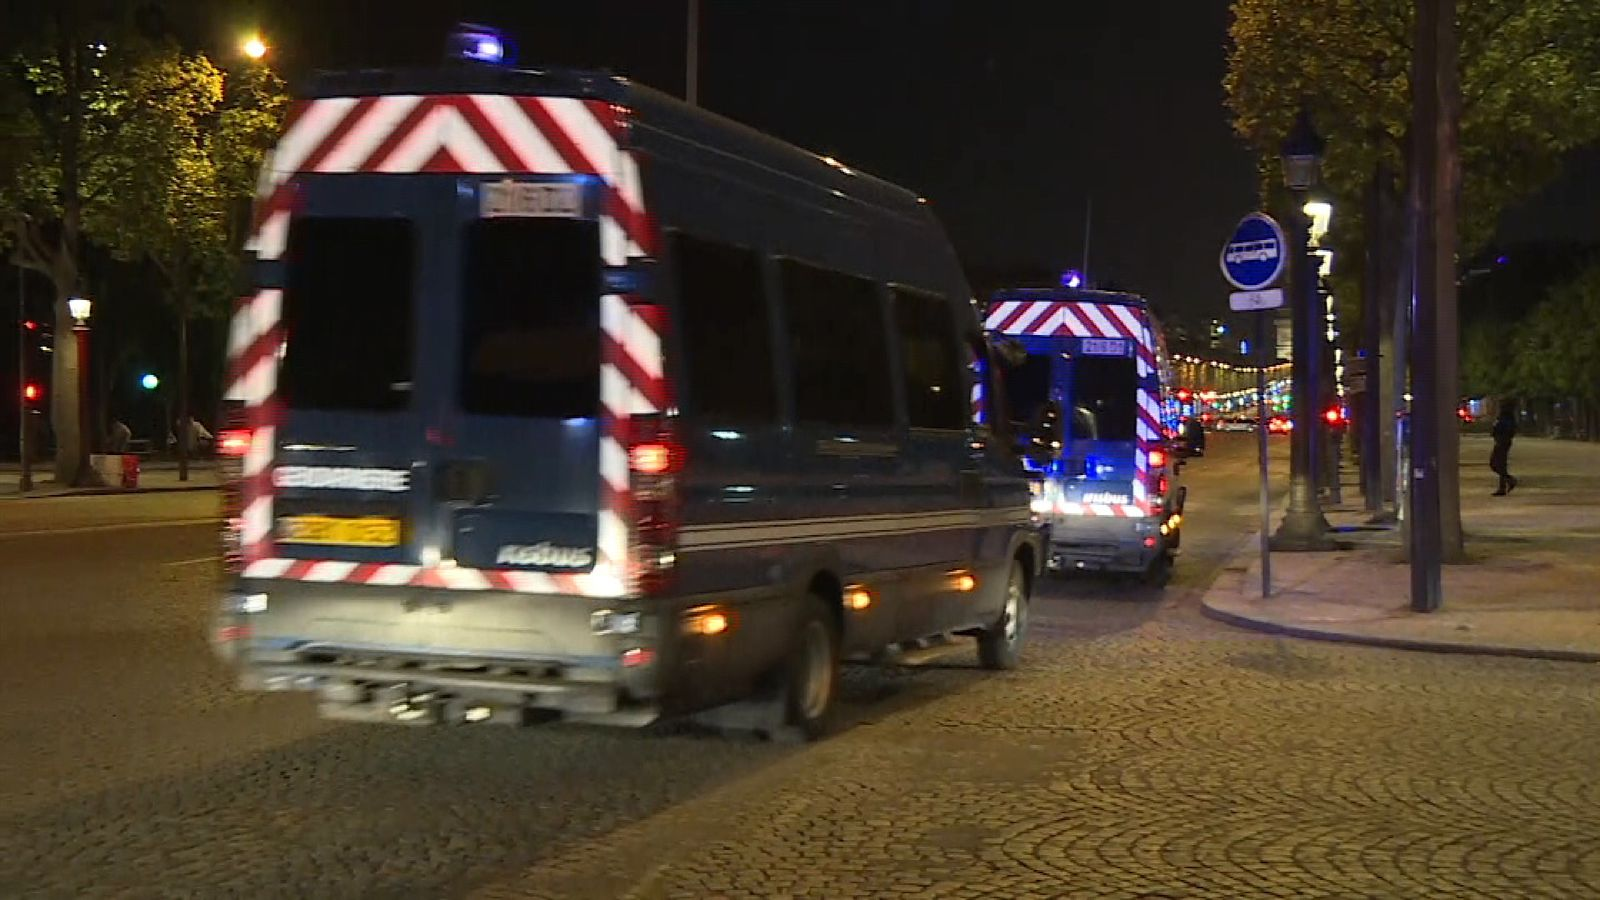 French police vehicles drive in convoy through Paris streets after shooting incident